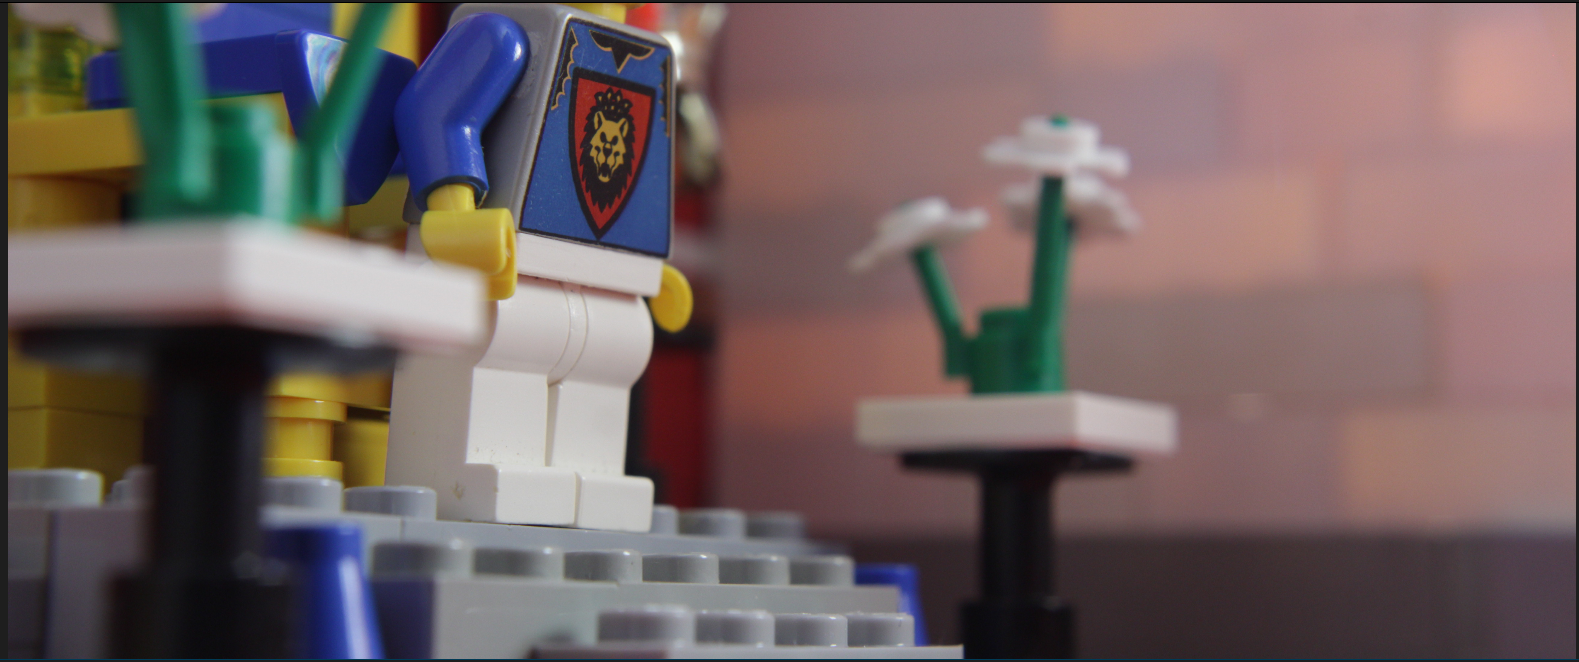 https://bricksafe.com/files/rioforce/Brickfilming/princess-storm/last-scene-shot.png